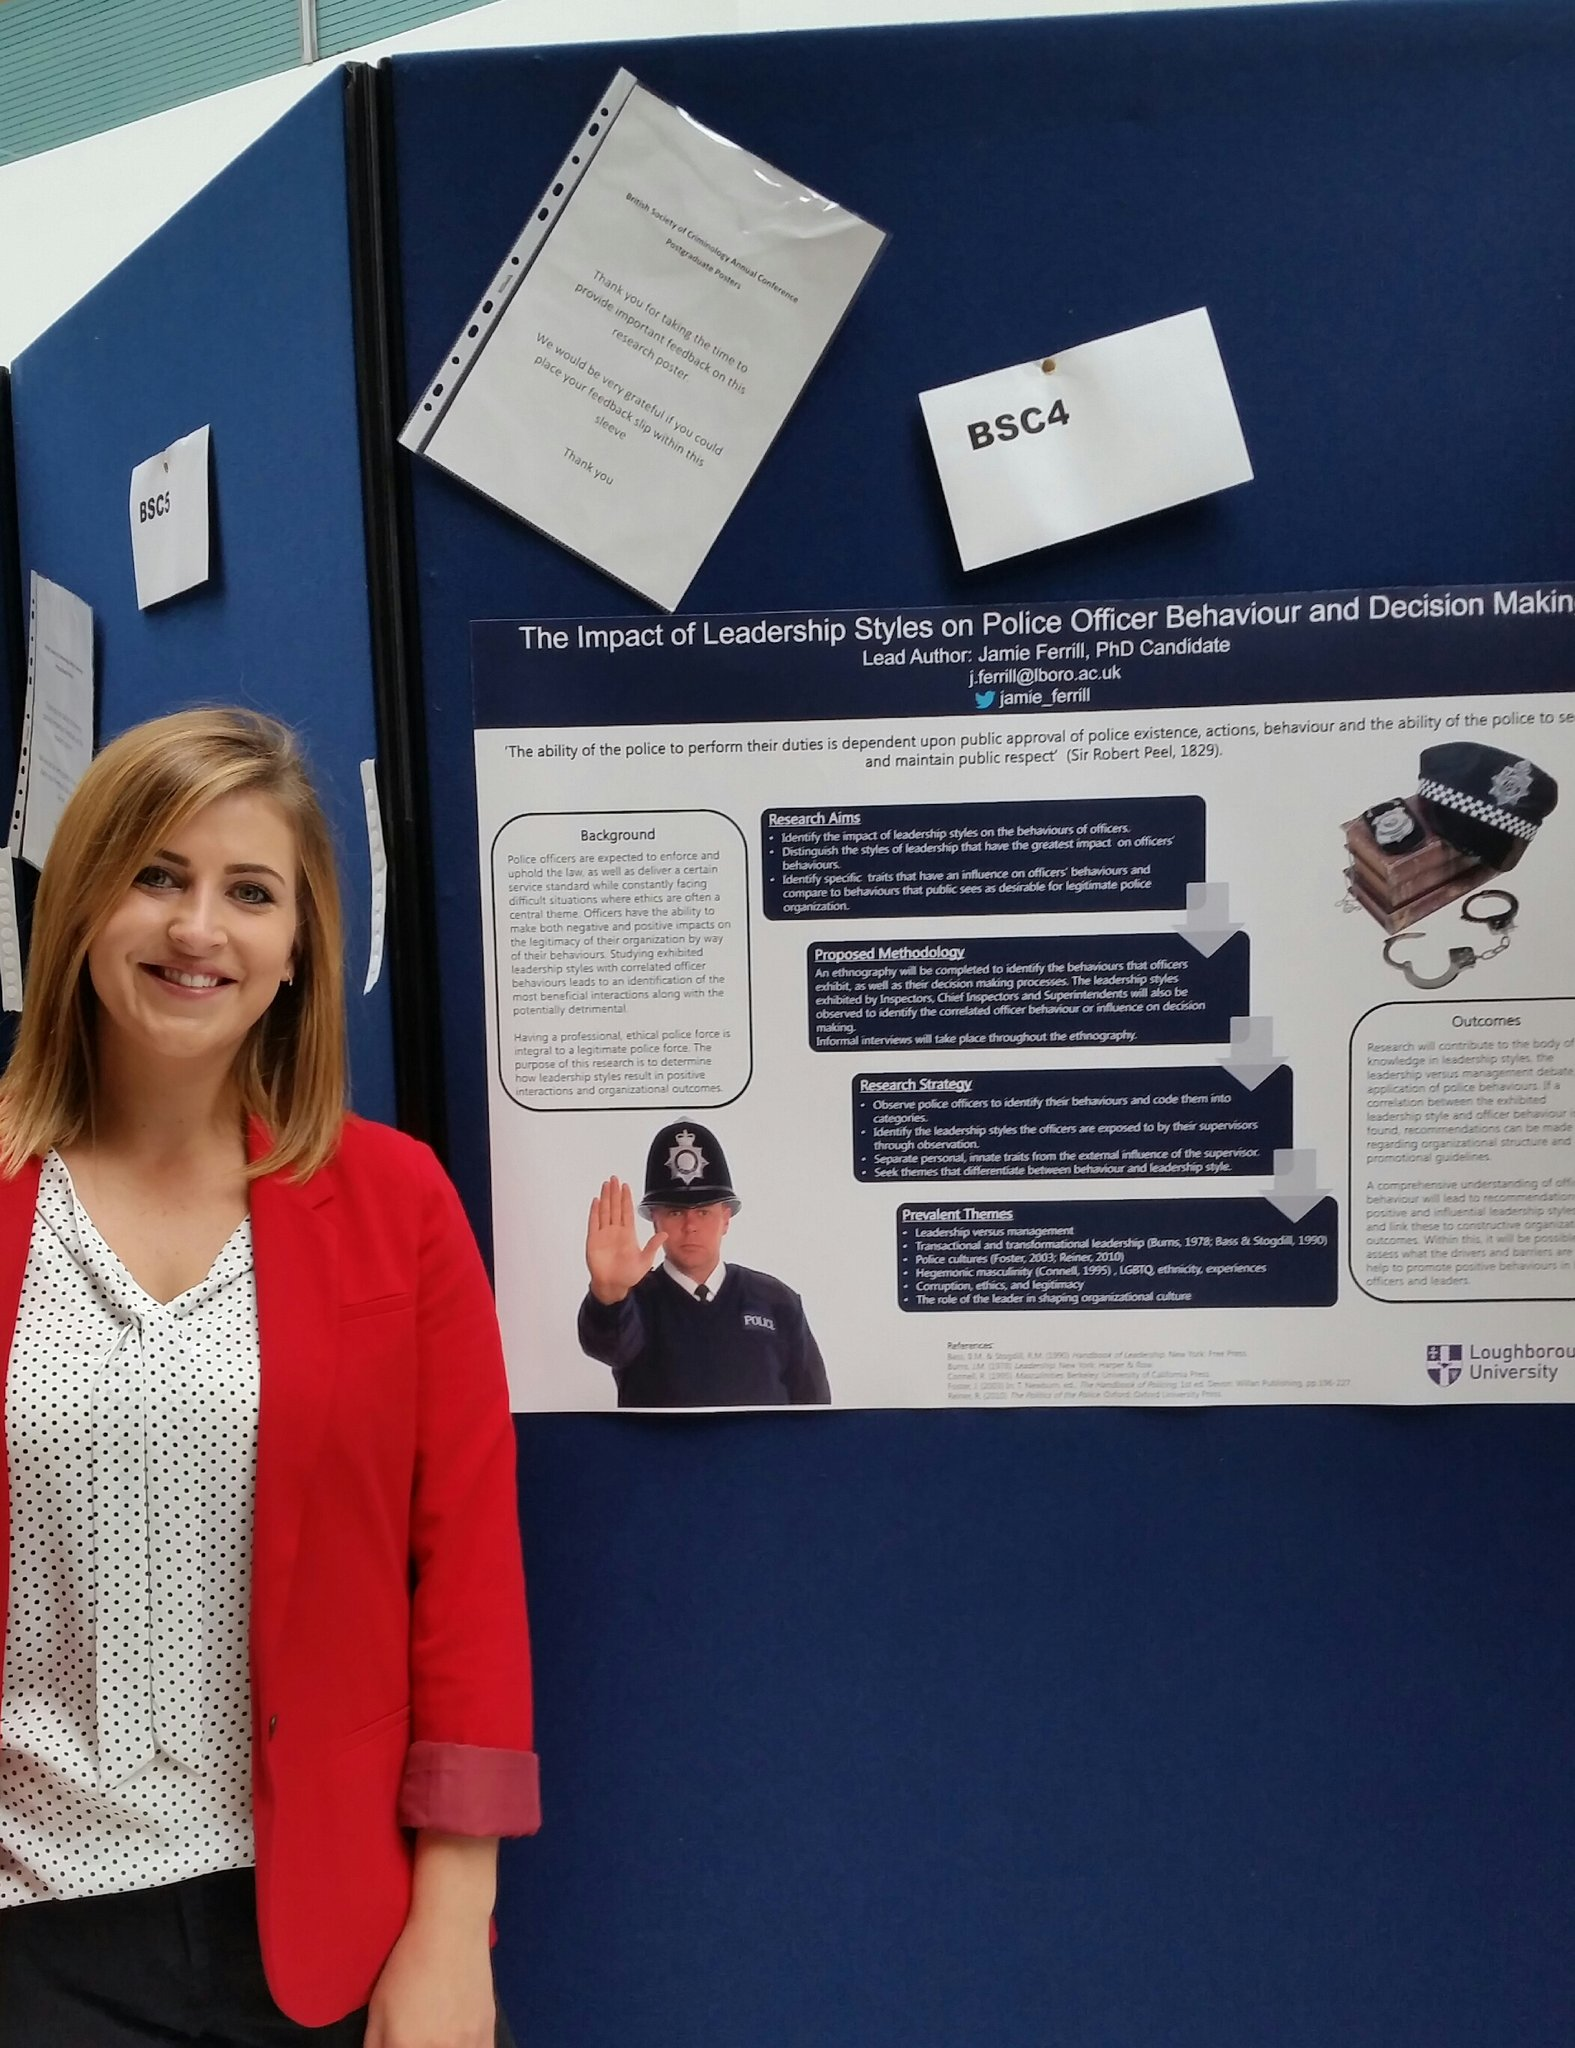 Posters are up! #BSCConf16 @LboroSocSci @BSCPG1 @BSCPolicingNet #police https://t.co/WKZBERslHO